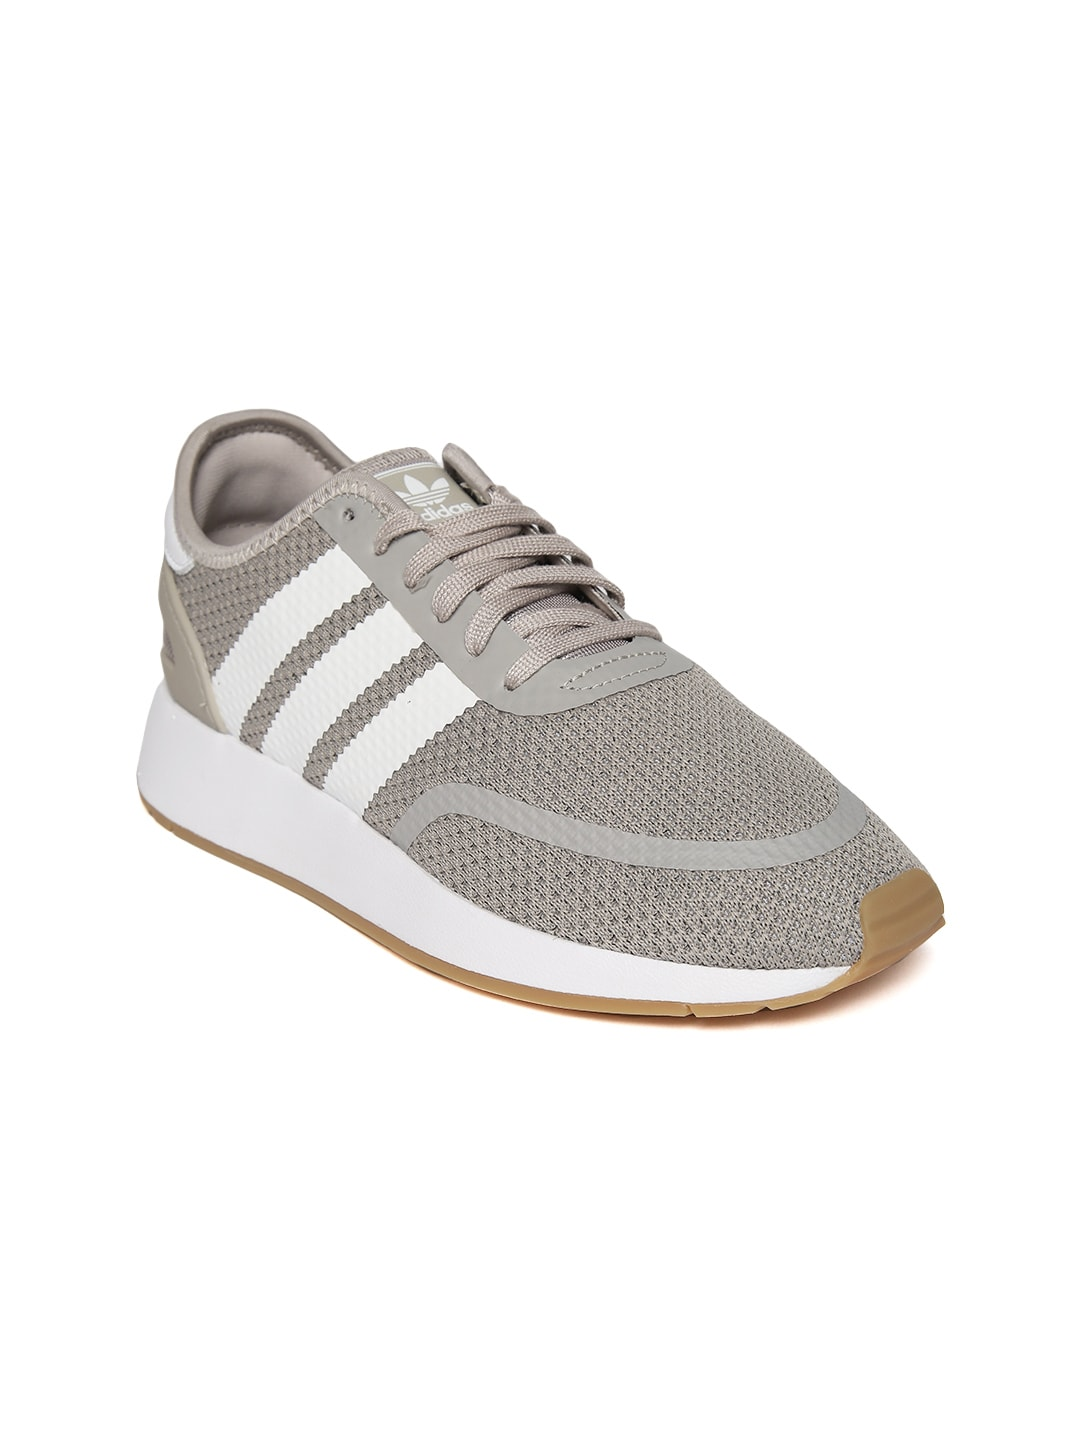 744514f14 Adidas Originals - Buy Adidas Originals Products Online